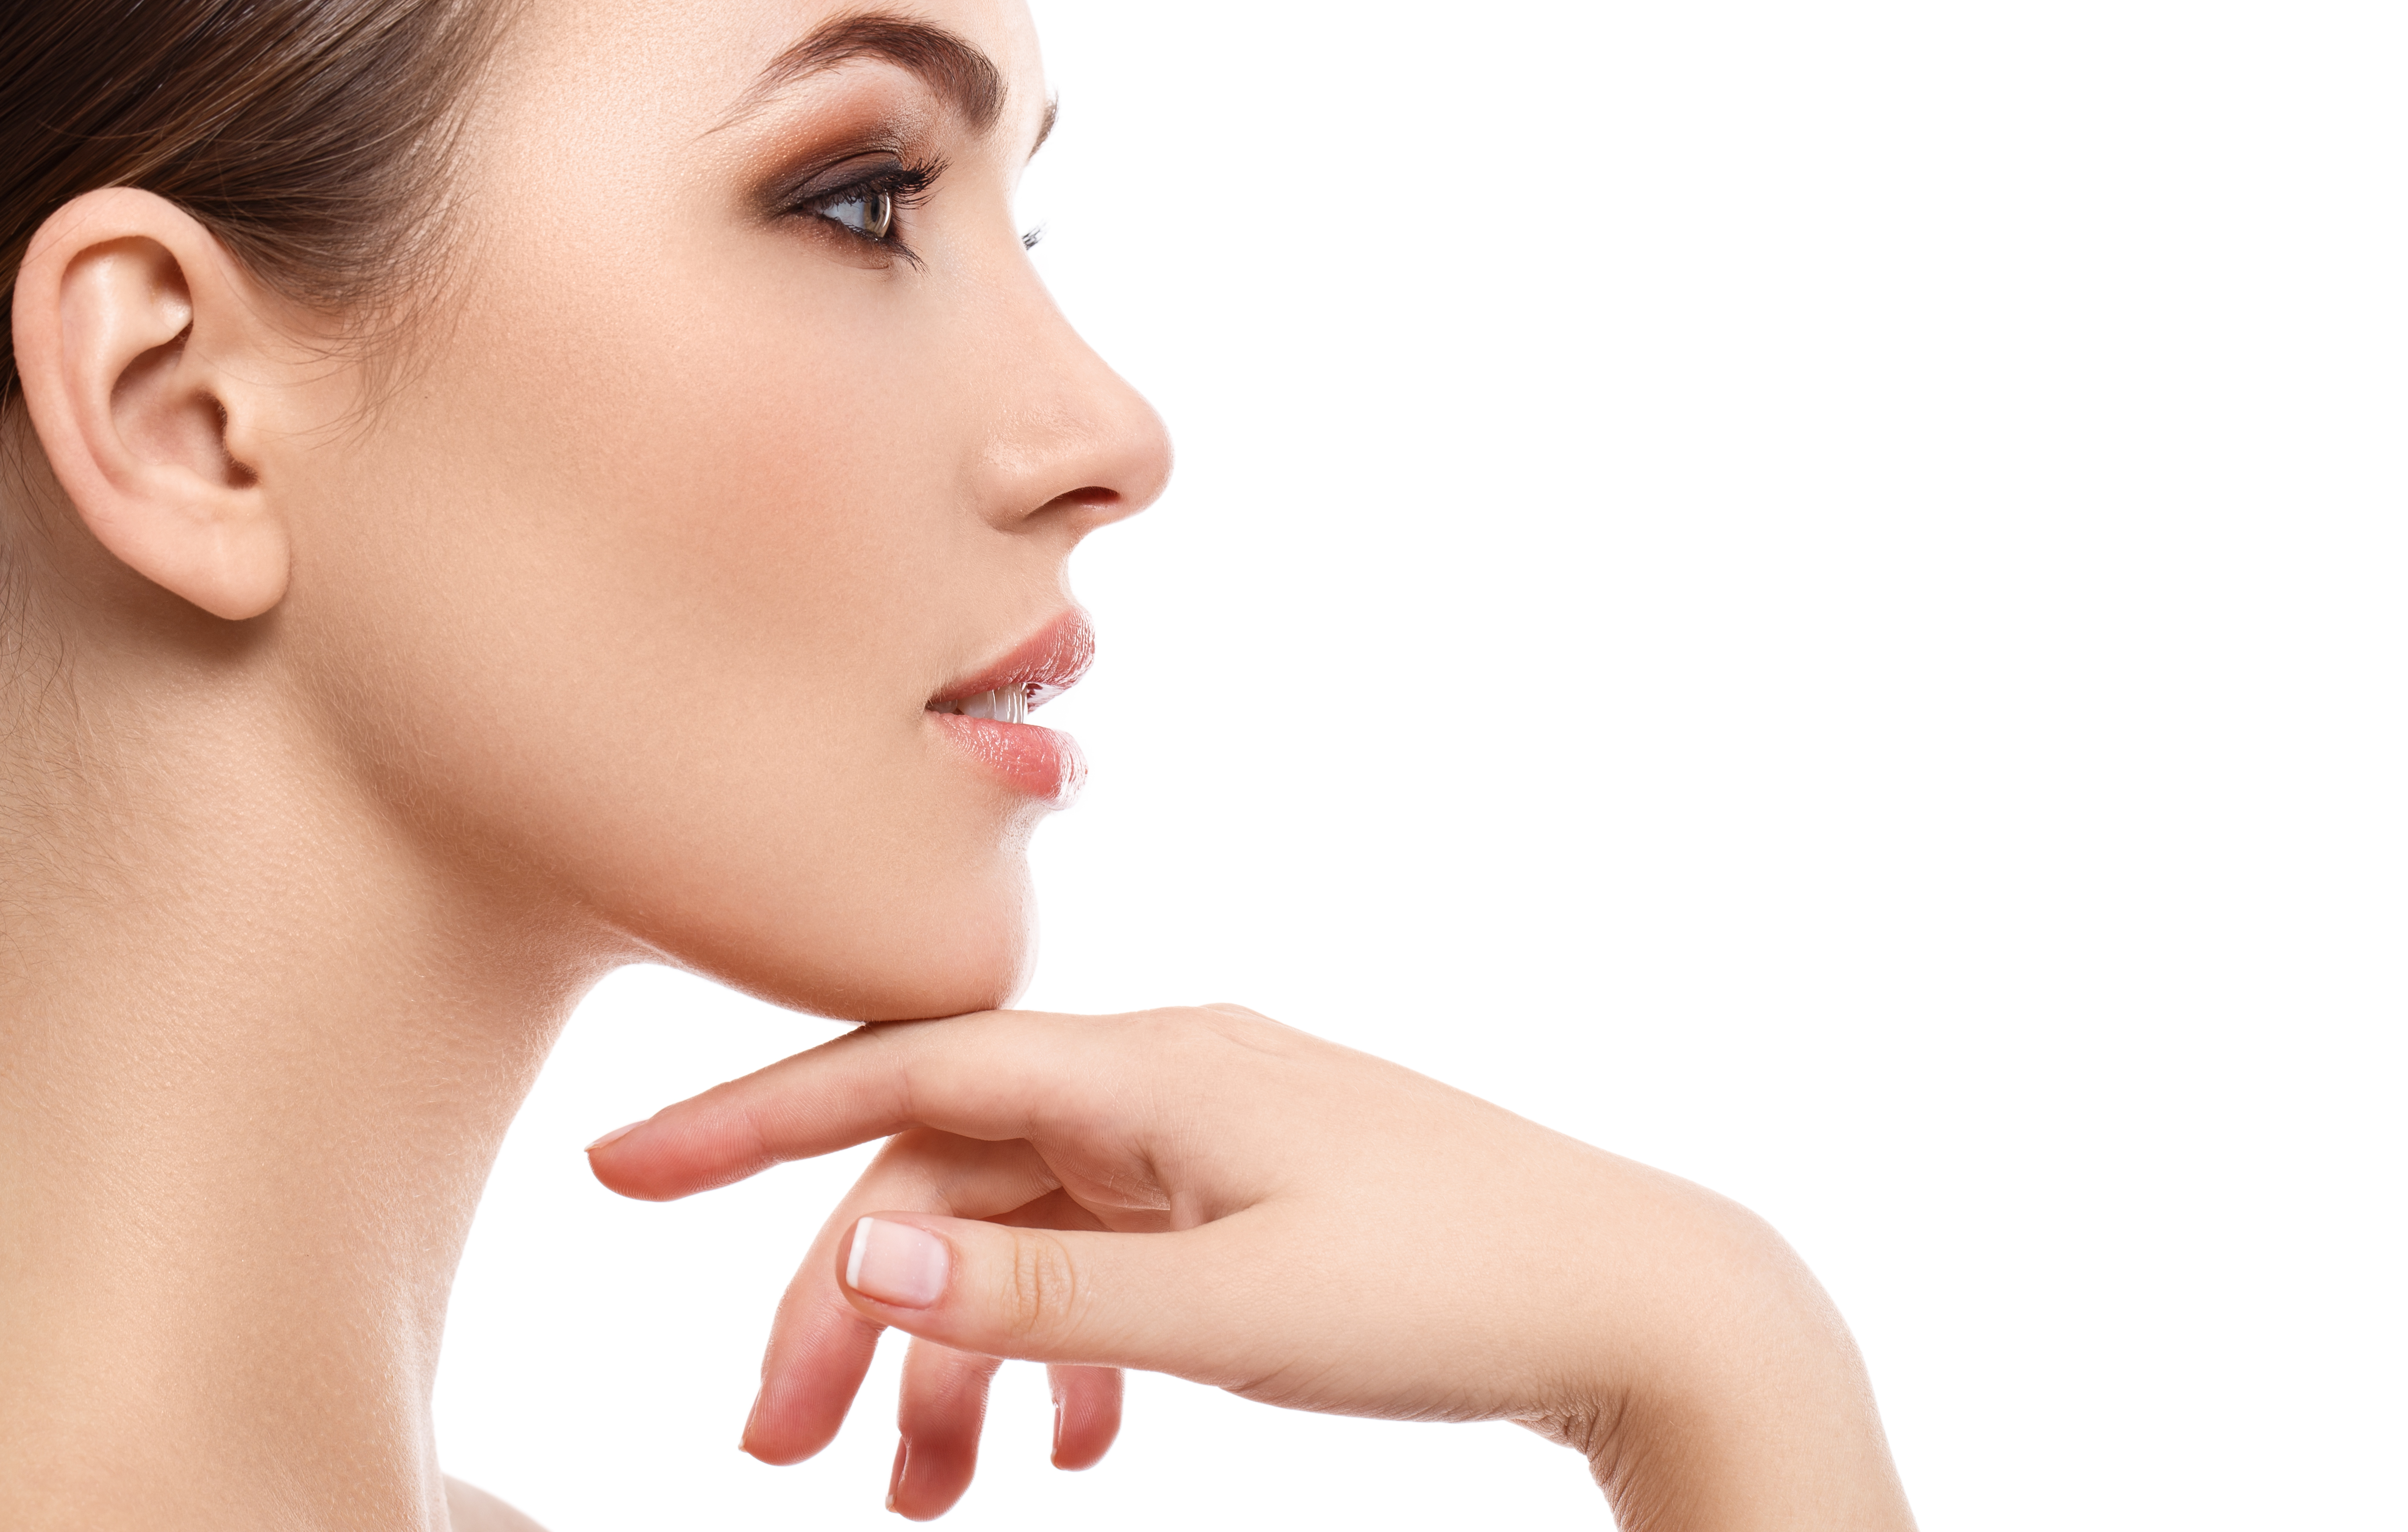 The Science Behind Kybella